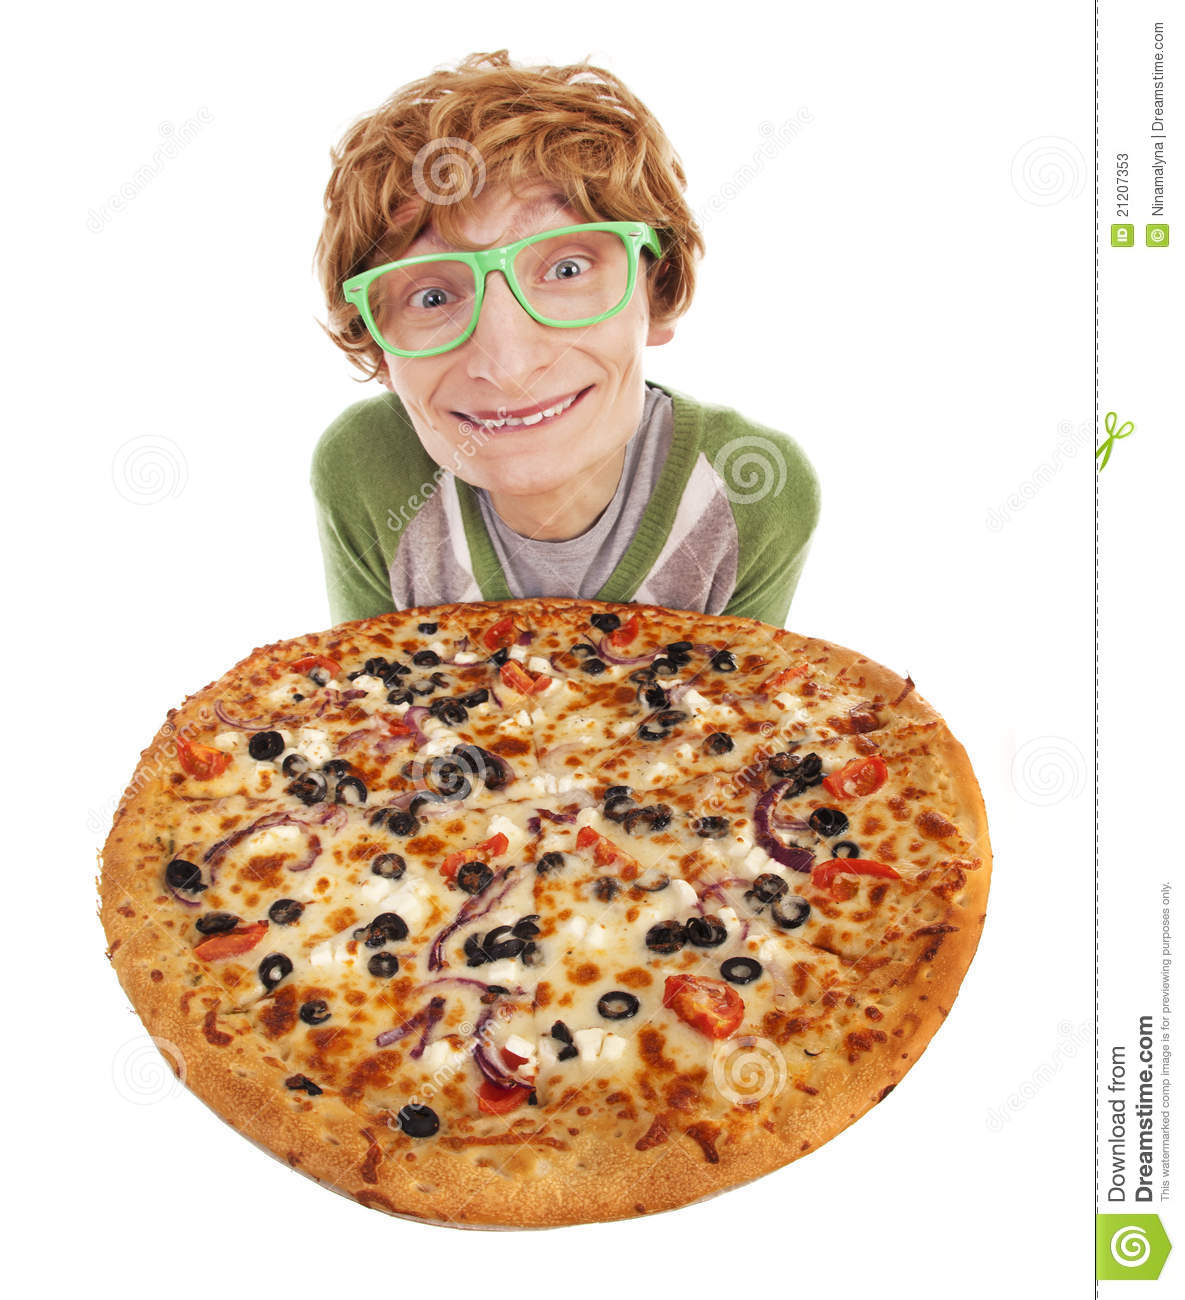 15 Funny Stock Photos Weird Guy Goggles Pizza Images